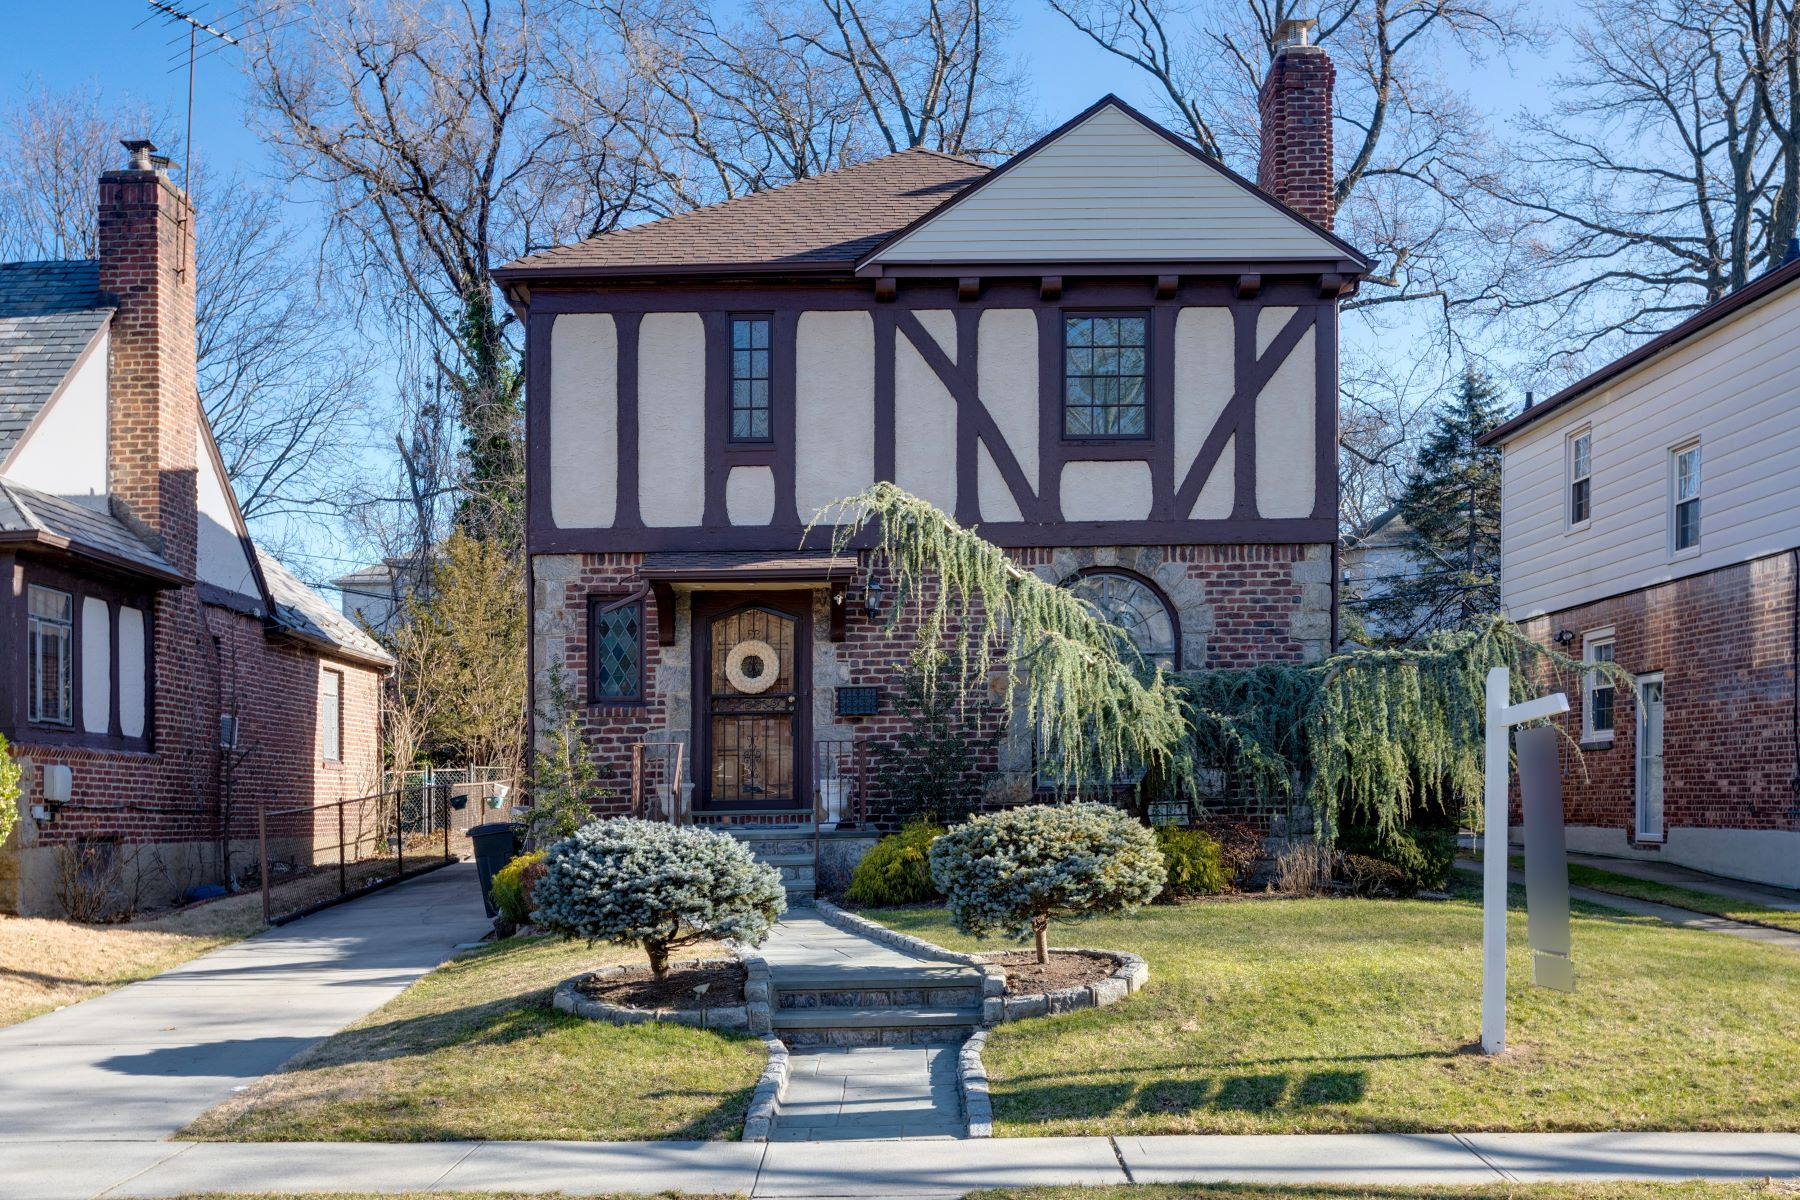 Single Family Homes for Sale at Hollis Hills 80-17 221 Queens Village, New York 11427 United States